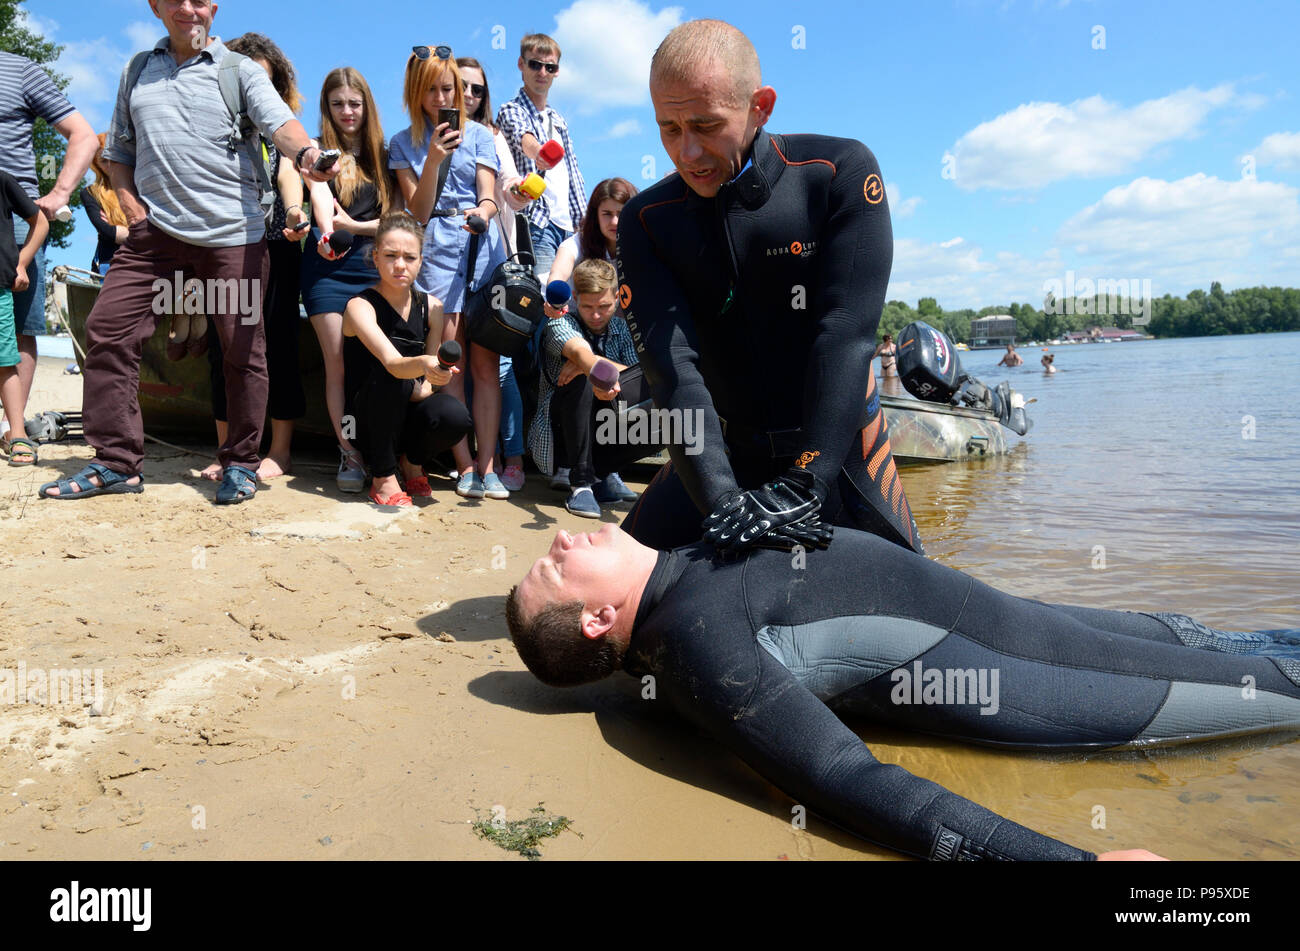 Lifeguards demonstrate right ways of artificial respiration for drowning. - Stock Image